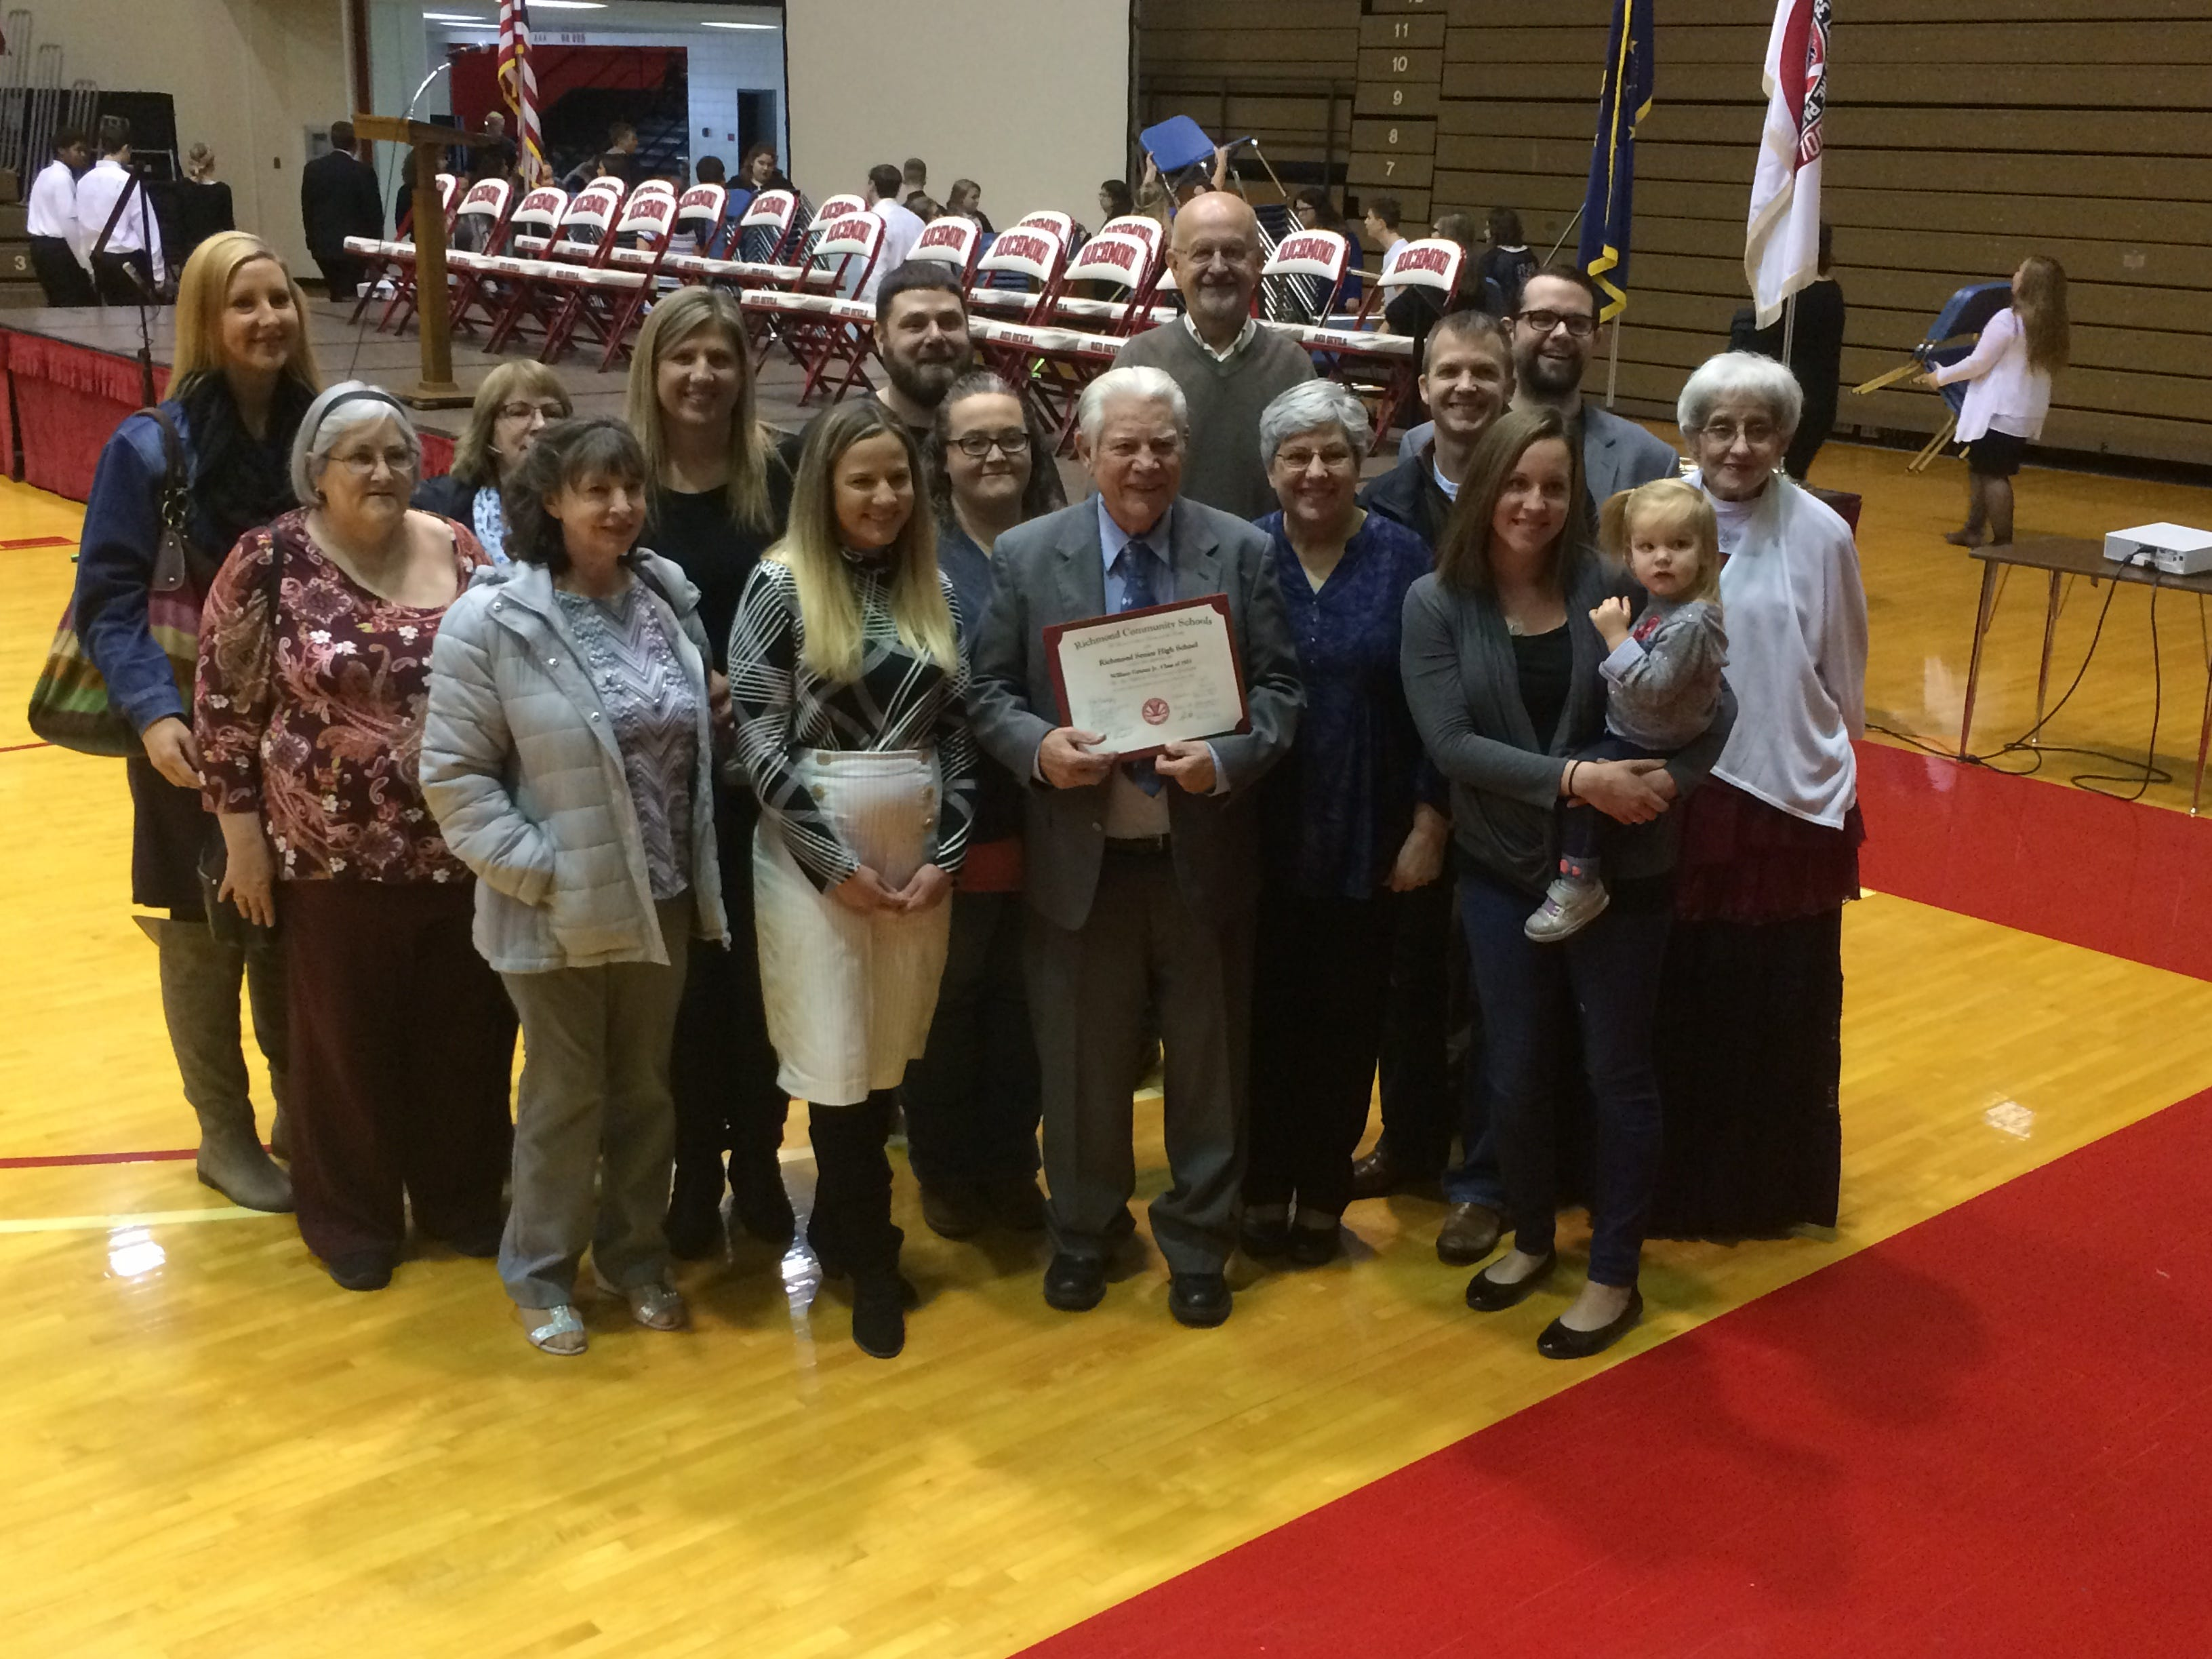 Family members pose with Bill Grimes after he received a diploma Friday during Richmond High School's Veterans Day Program. Grimes daughter, Kathy Dudas (far right), pursued the diploma for her father.